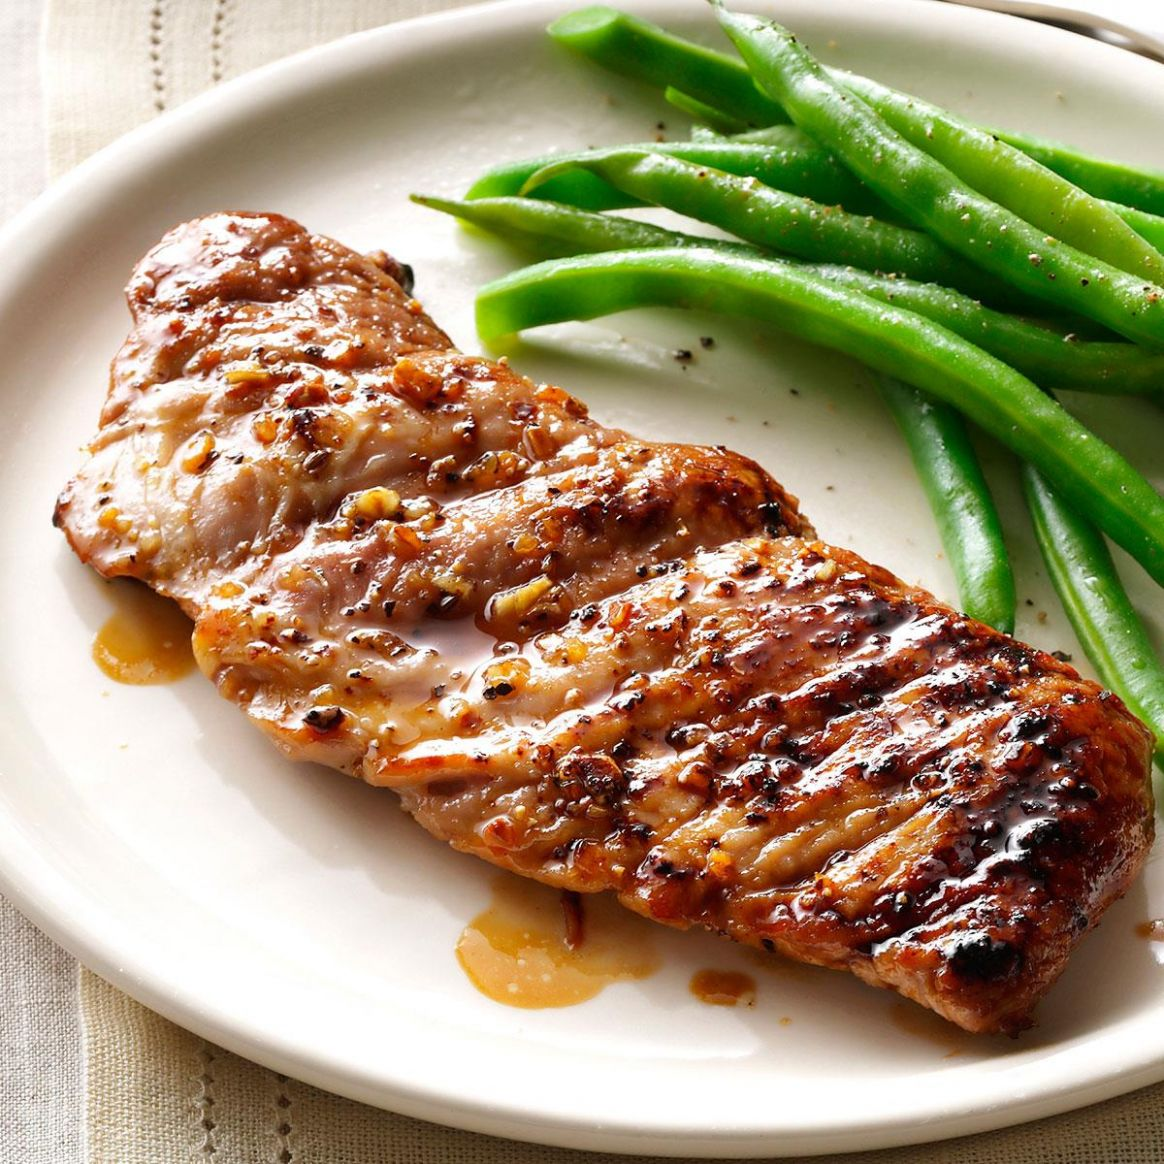 Caramelized Pork Tenderloin - Pork Tenderloin Recipes